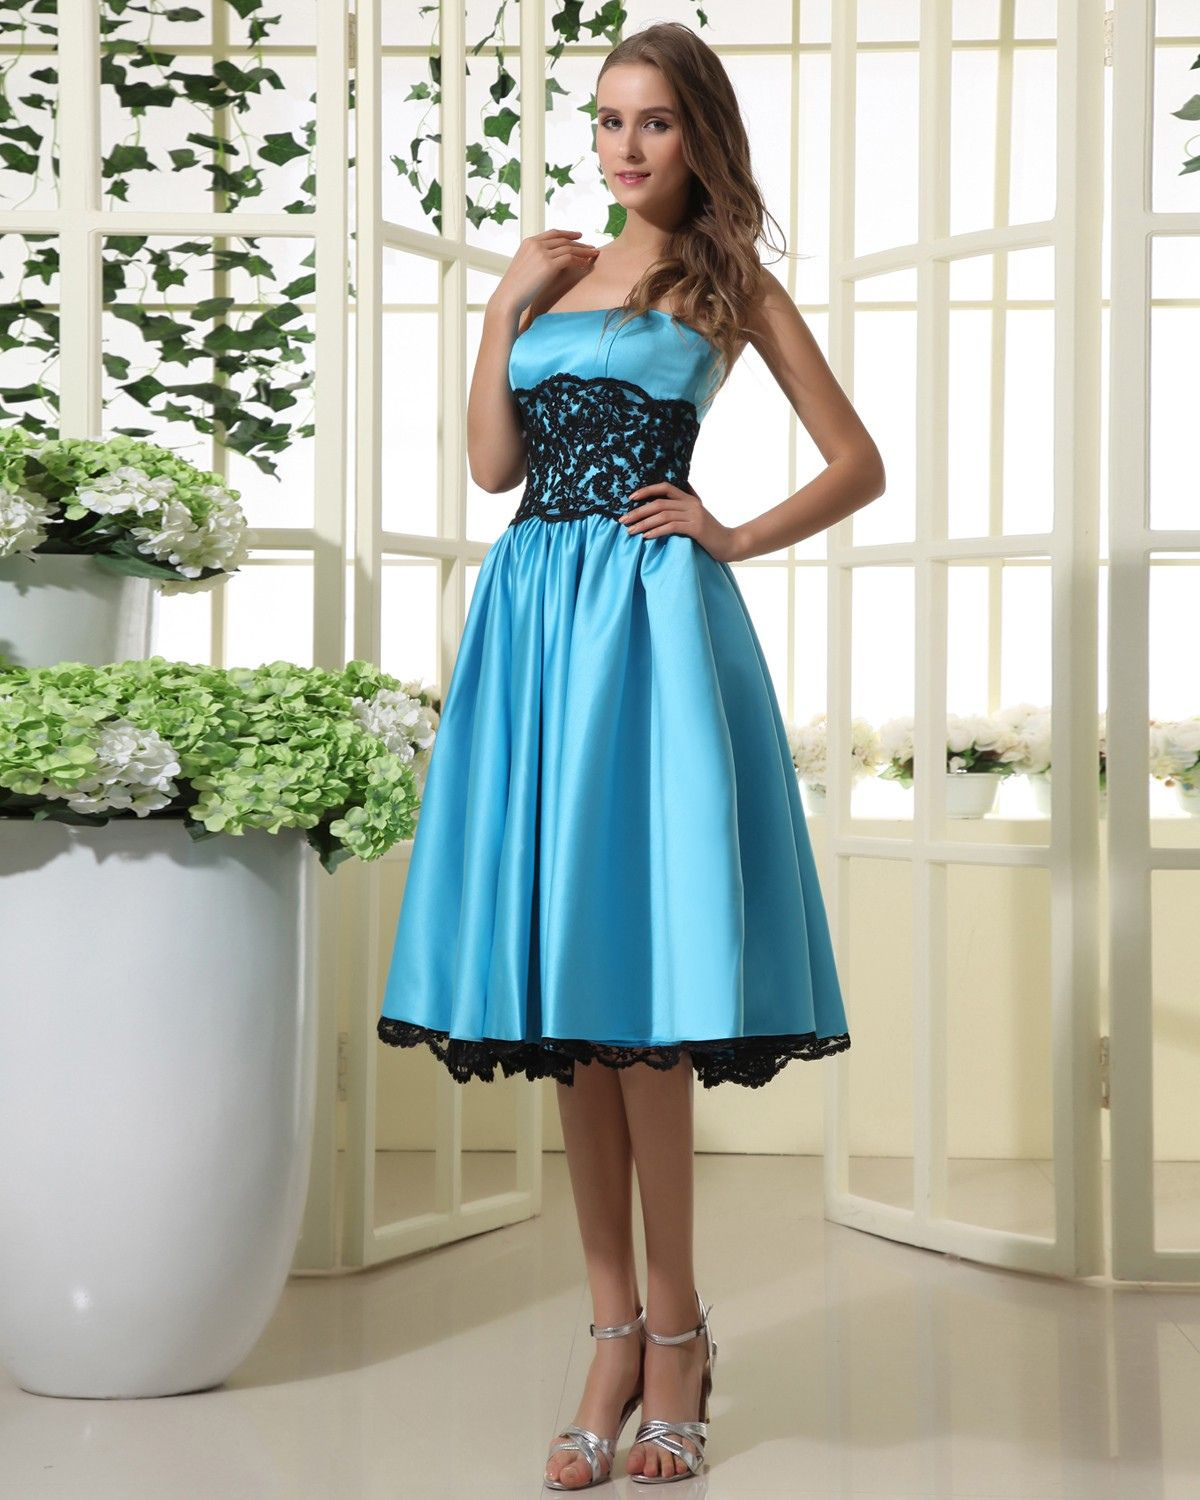 77+ Caribbean Blue Wedding Dresses - Wedding Dresses for Cheap Check ...